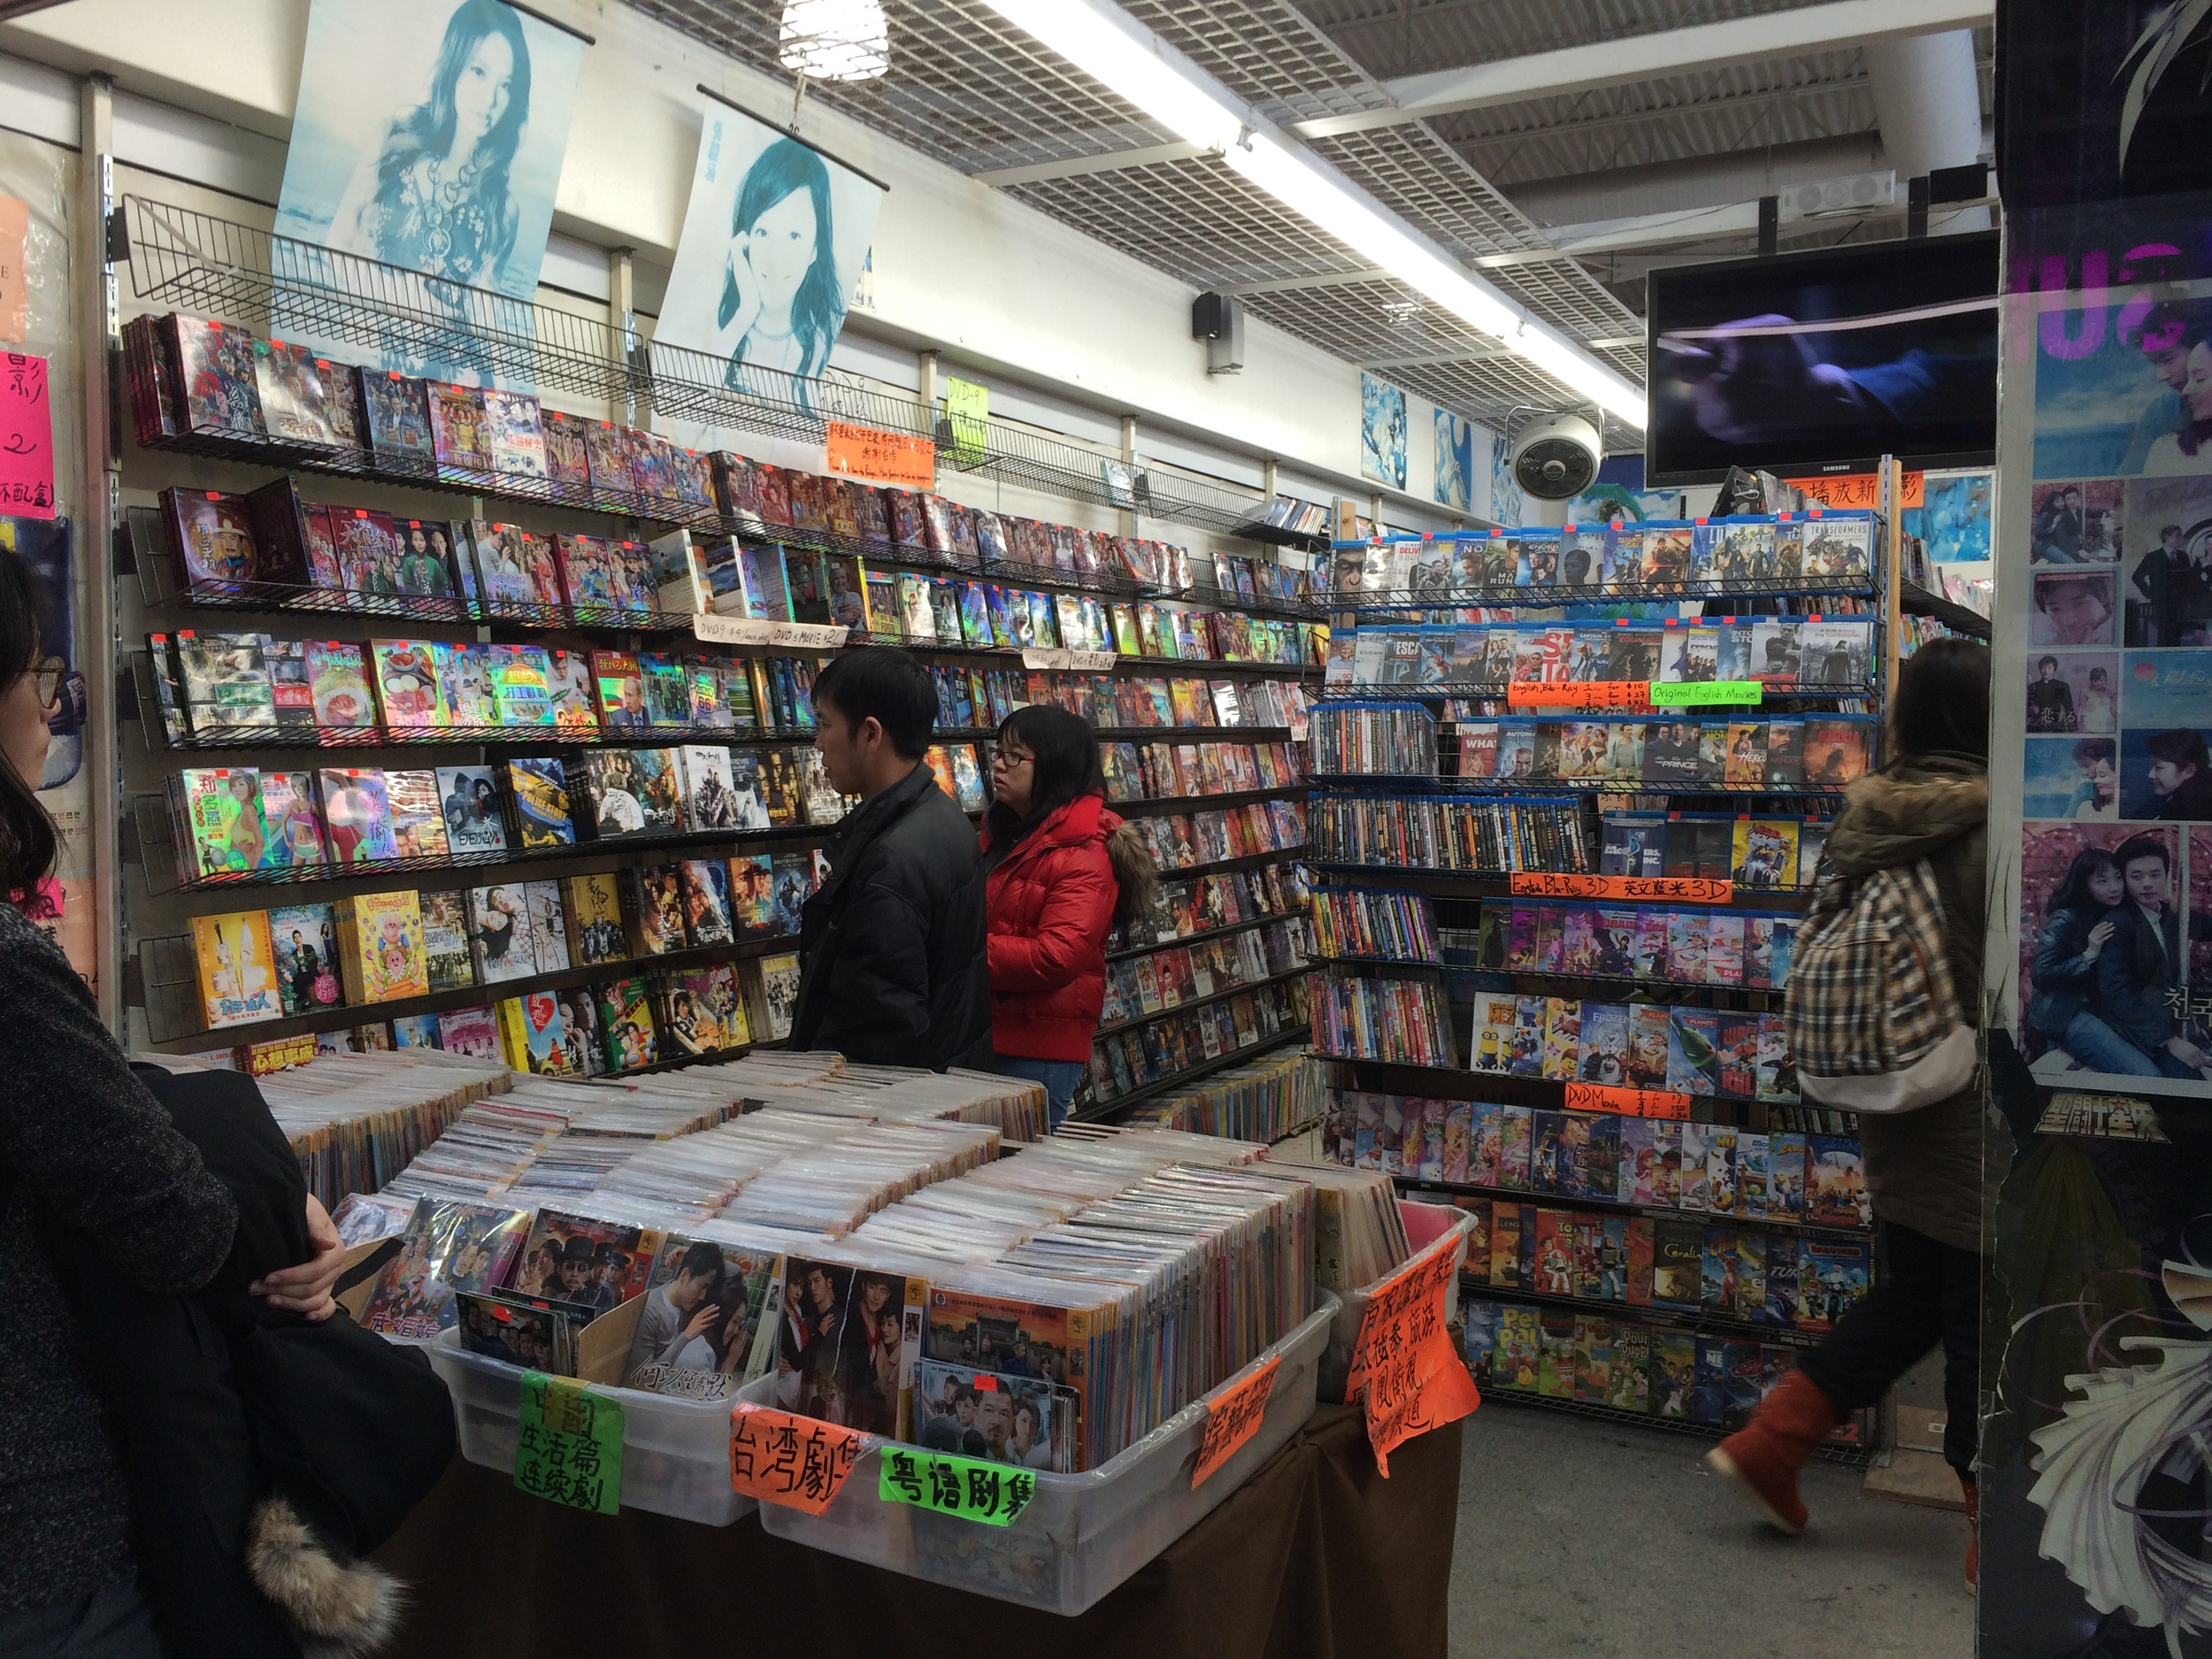 Store inside Pacific Mall selling what looks like bootleg DVDs